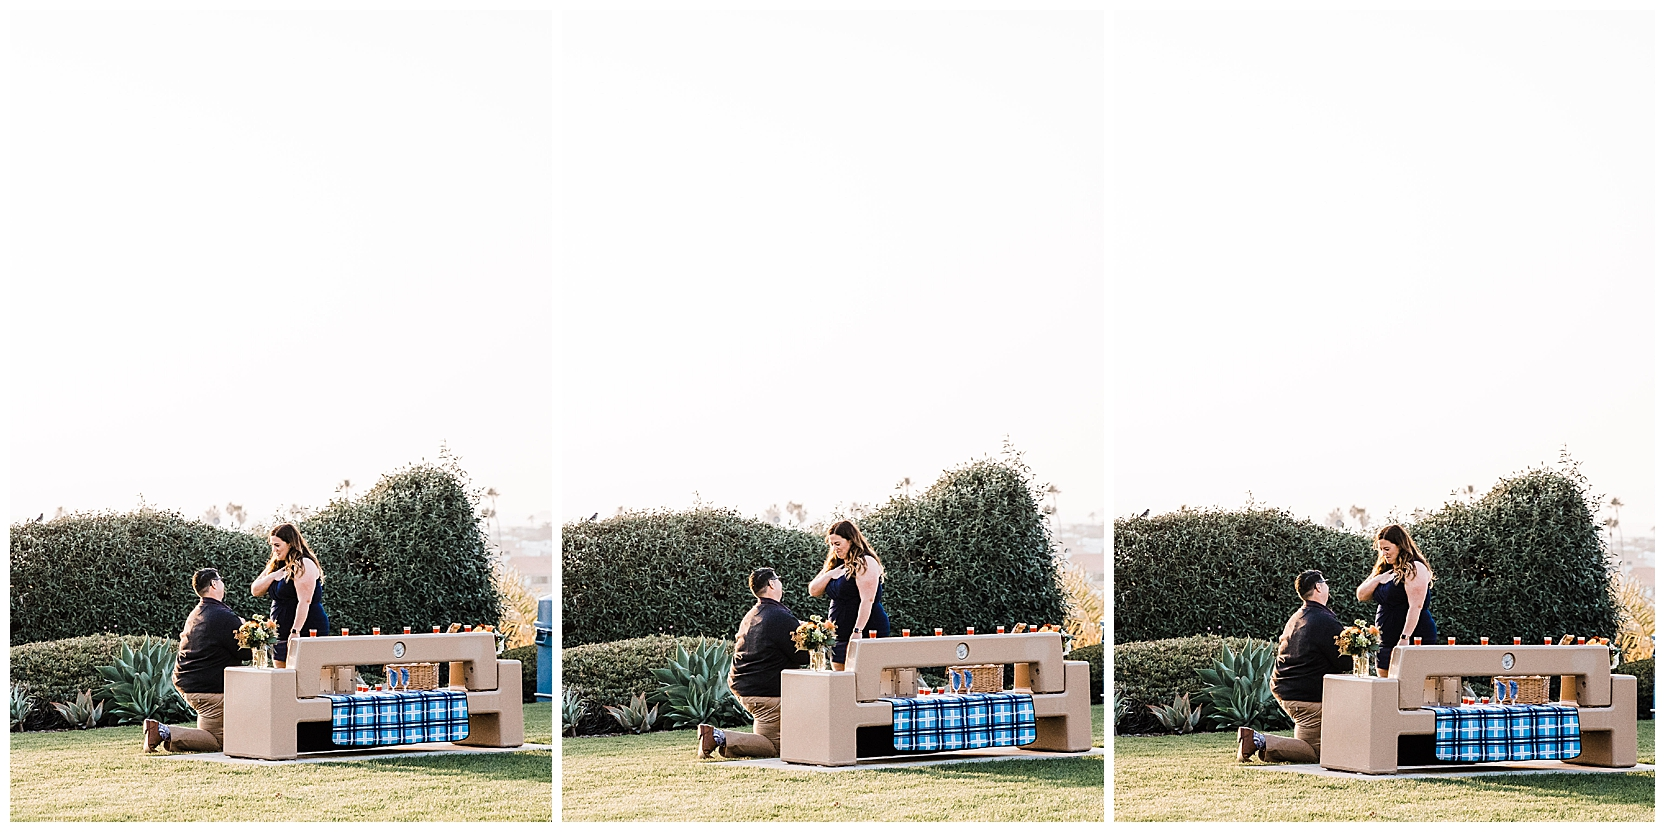 jessicafredericks_huntingtonbeach_proposal_sunset_engagement_0007.jpg